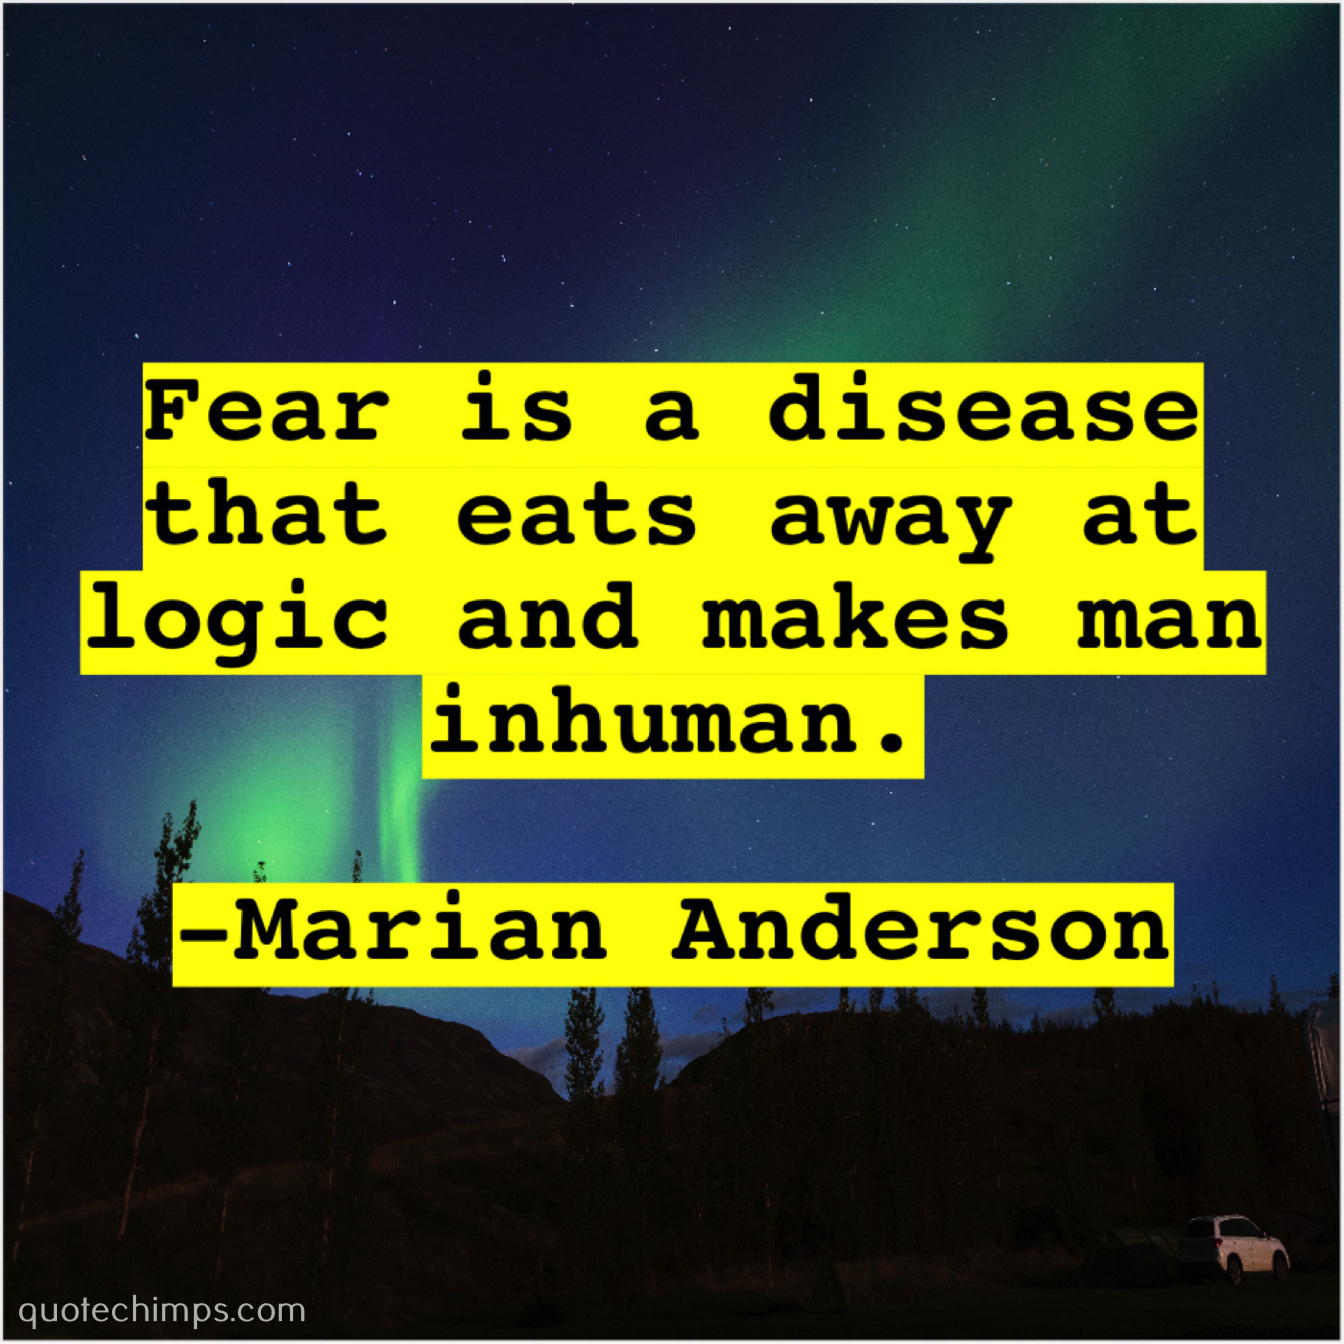 Marian Anderson Quote Chimps